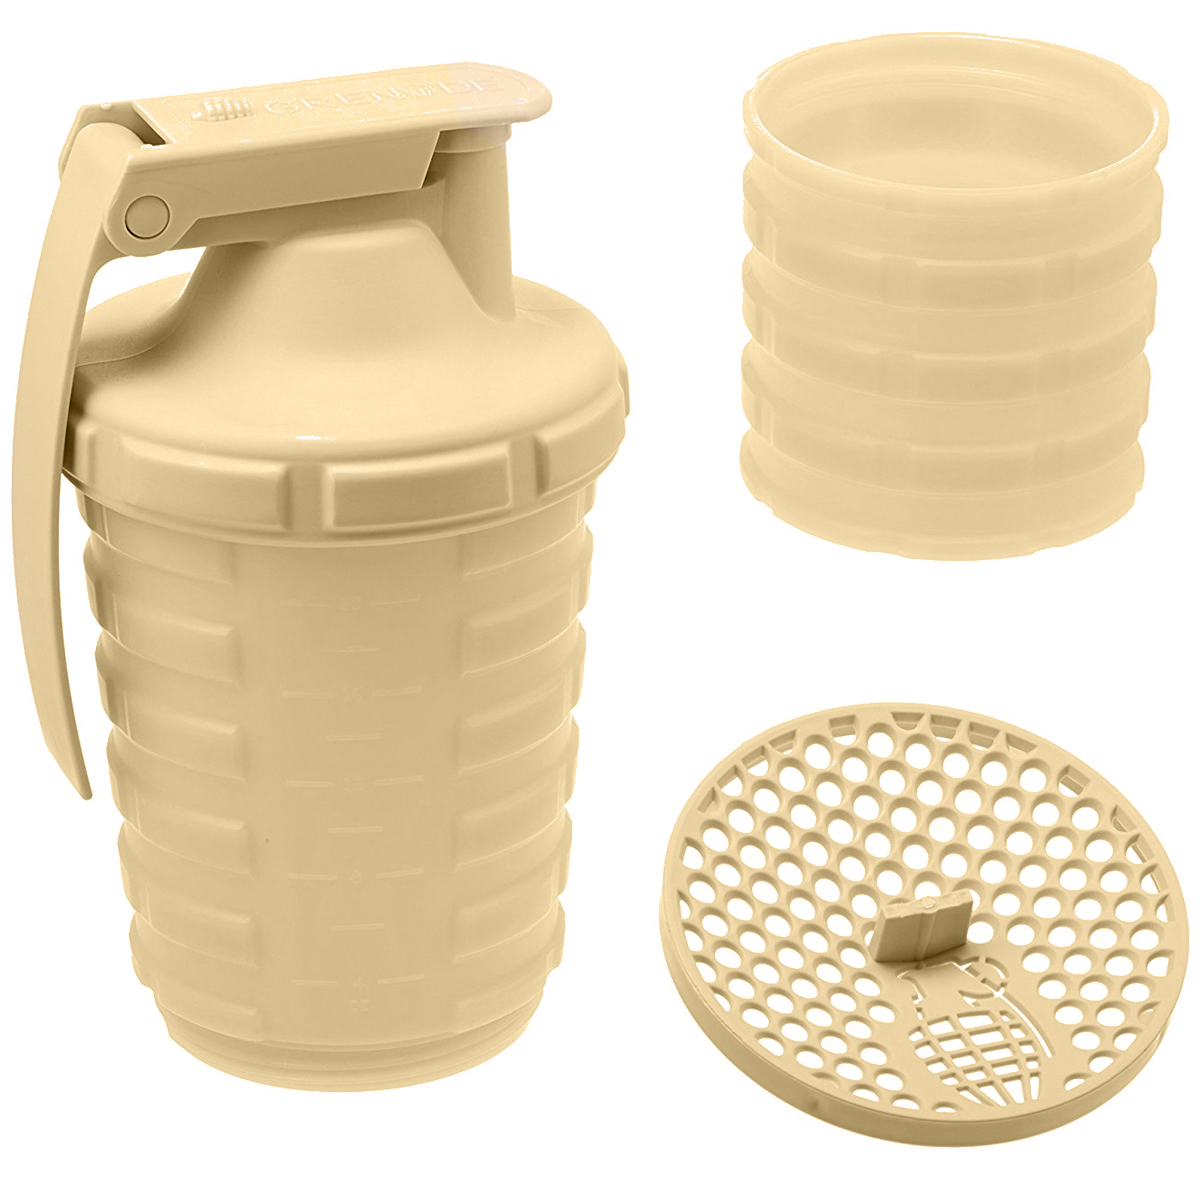 thumbnail 4 - Grenade-20-oz-Shaker-Blender-Mixer-Bottle-with-600ml-Protein-Cup-Compartment